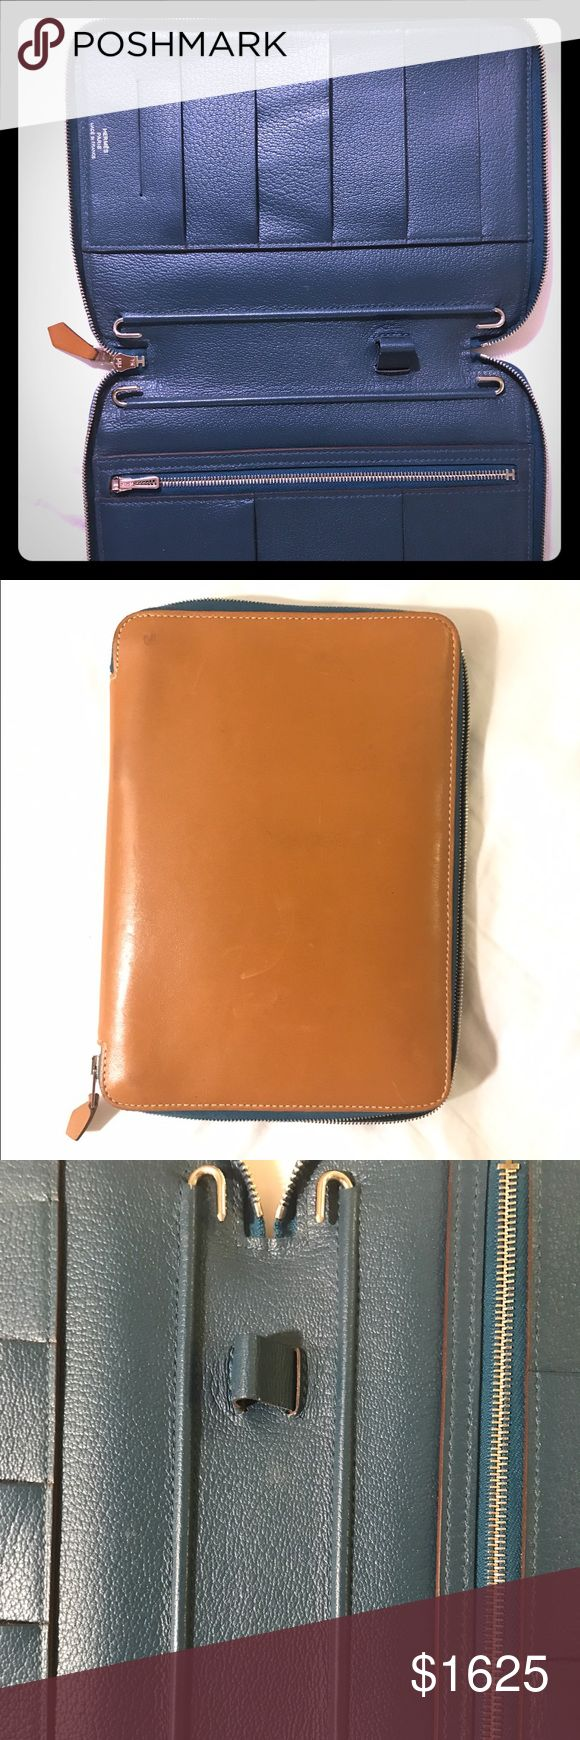 "😃Auth Hermes ""Globetrotter"" Portfolio Case Auth Hermes Calfskin outside, pebble leather inside. Some signs of wear on outside, see photos.  Inside in perf cond. Bought 2 yrs ago @ Hermes Shop  $2400 5""x7"" made in France. Fits 9 cards, 1 pen, has money pocket and fits either iPad Mini or Hermes calendar. STUNNING BUTTERY LEATHER! Male or Female great V Day gift! Hermes Bags Clutches & Wristlets"